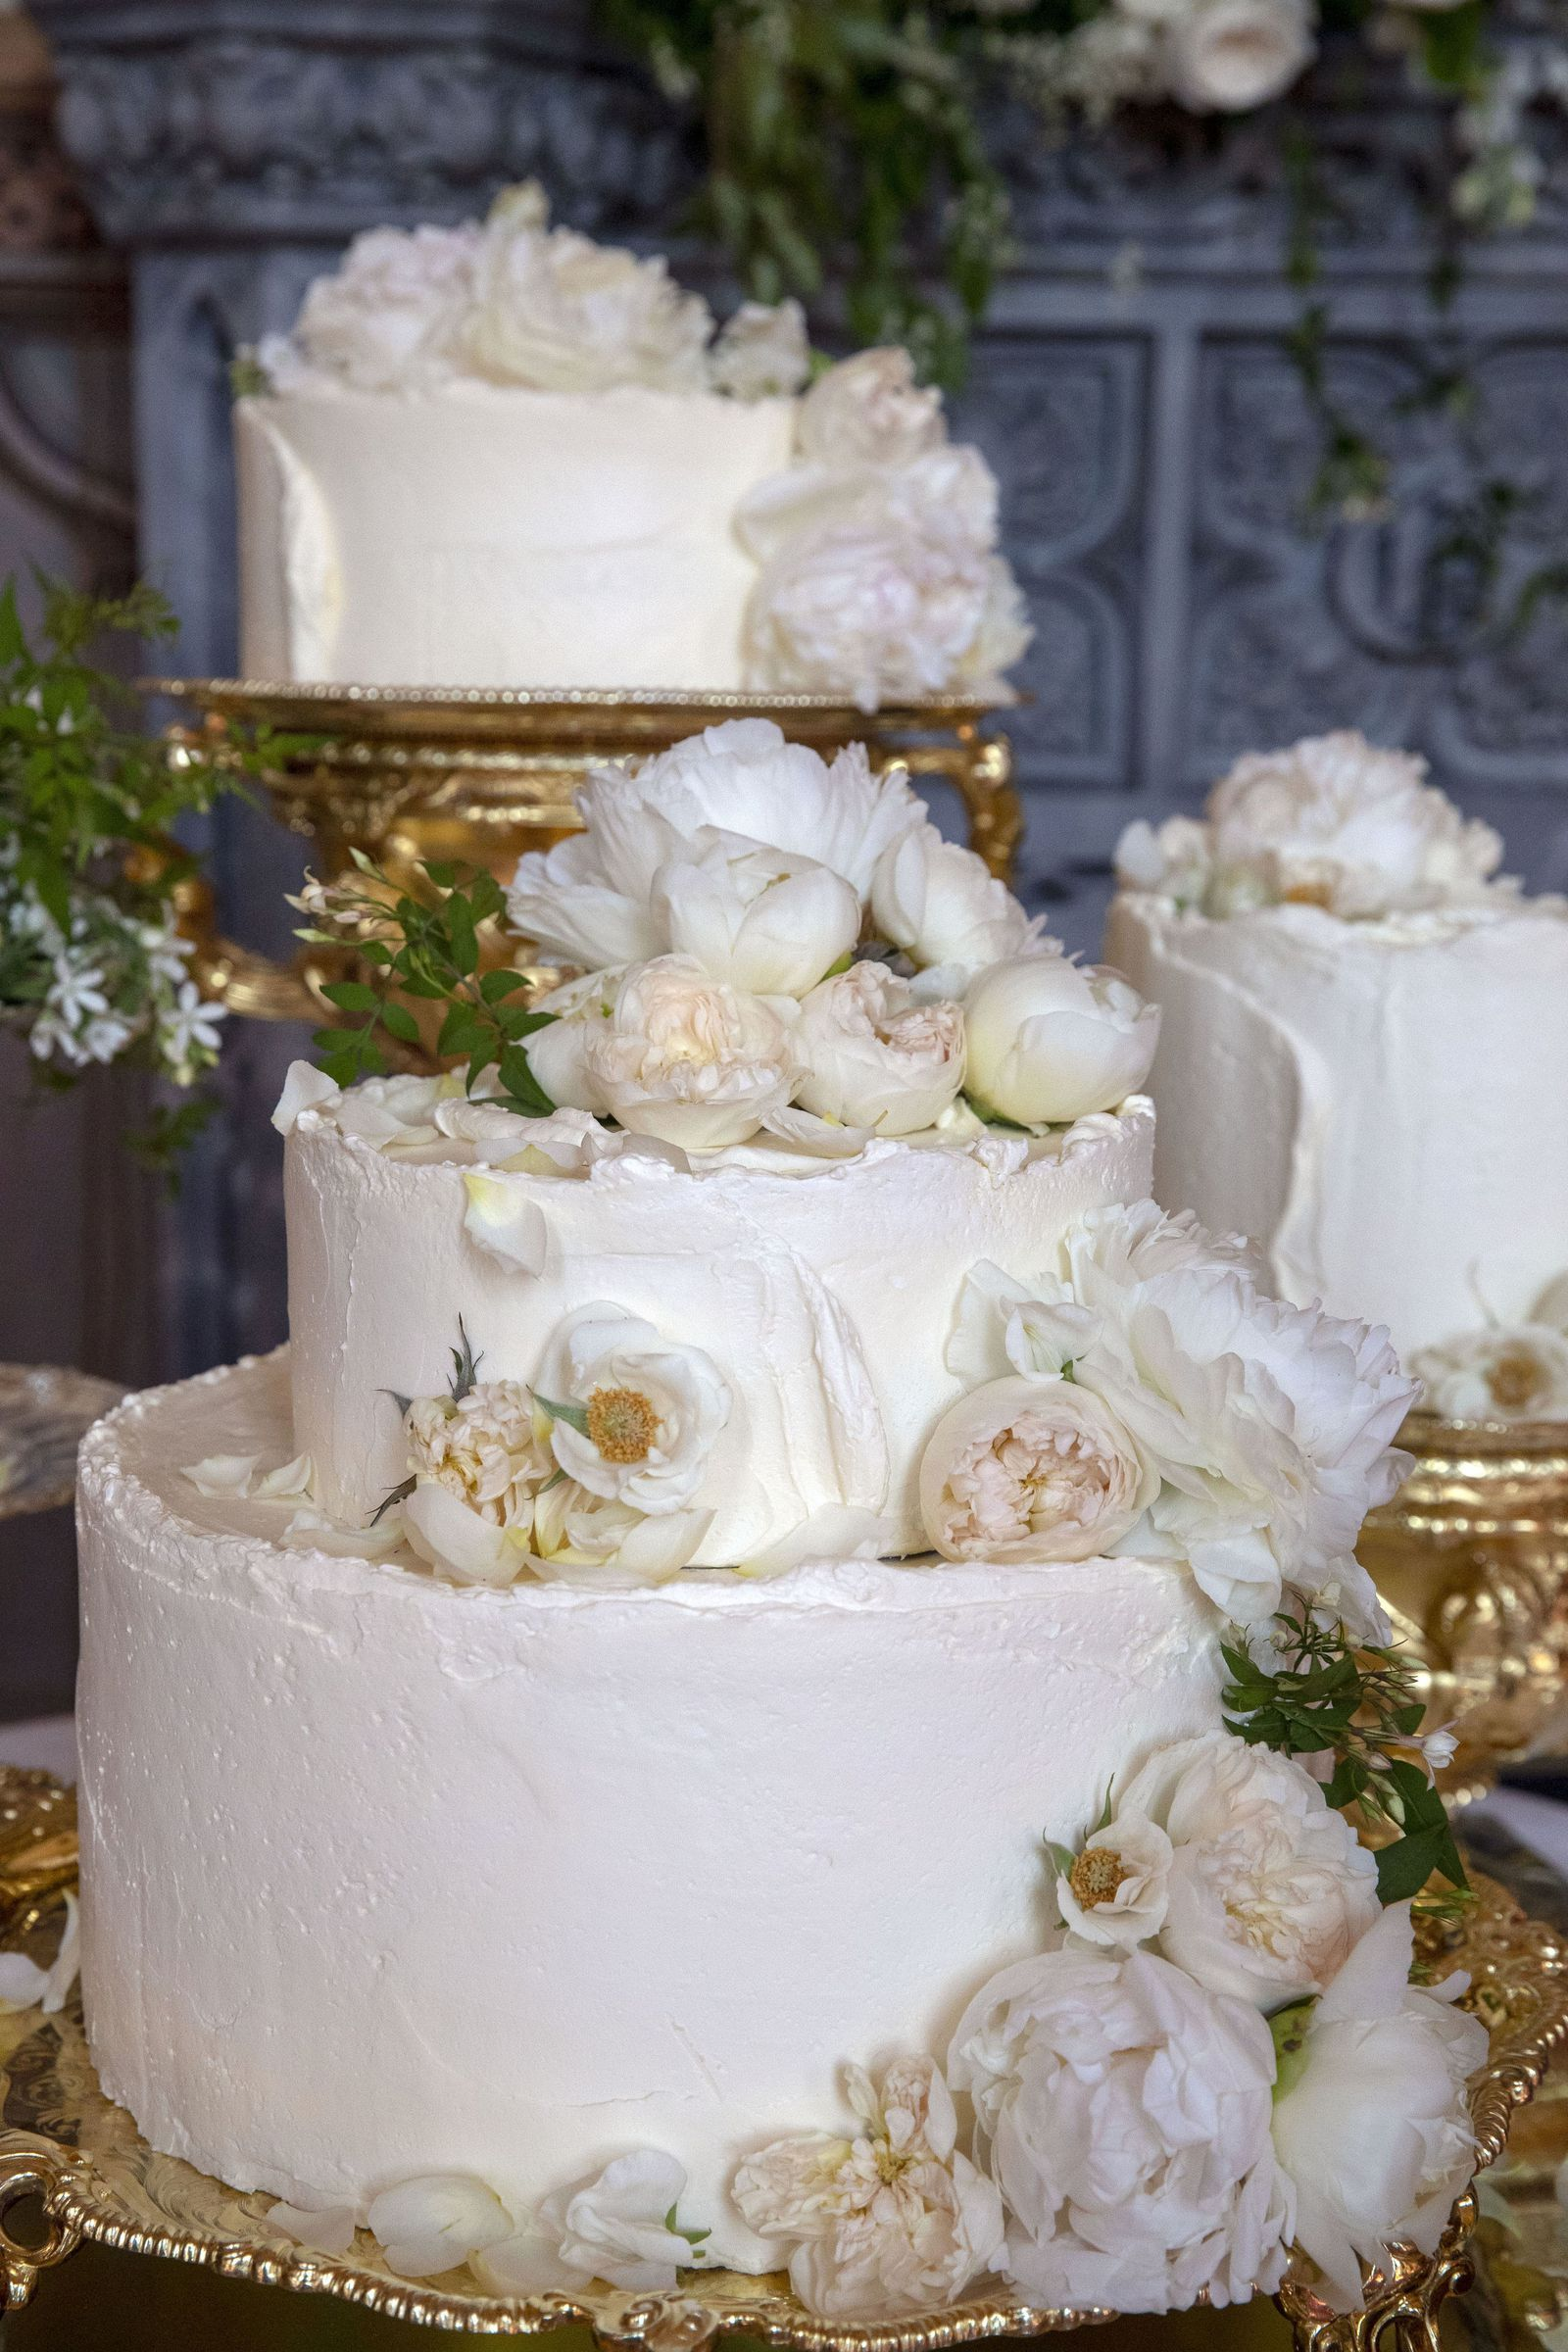 The Royal Wedding Cake Is About To Start A Whole New Cake